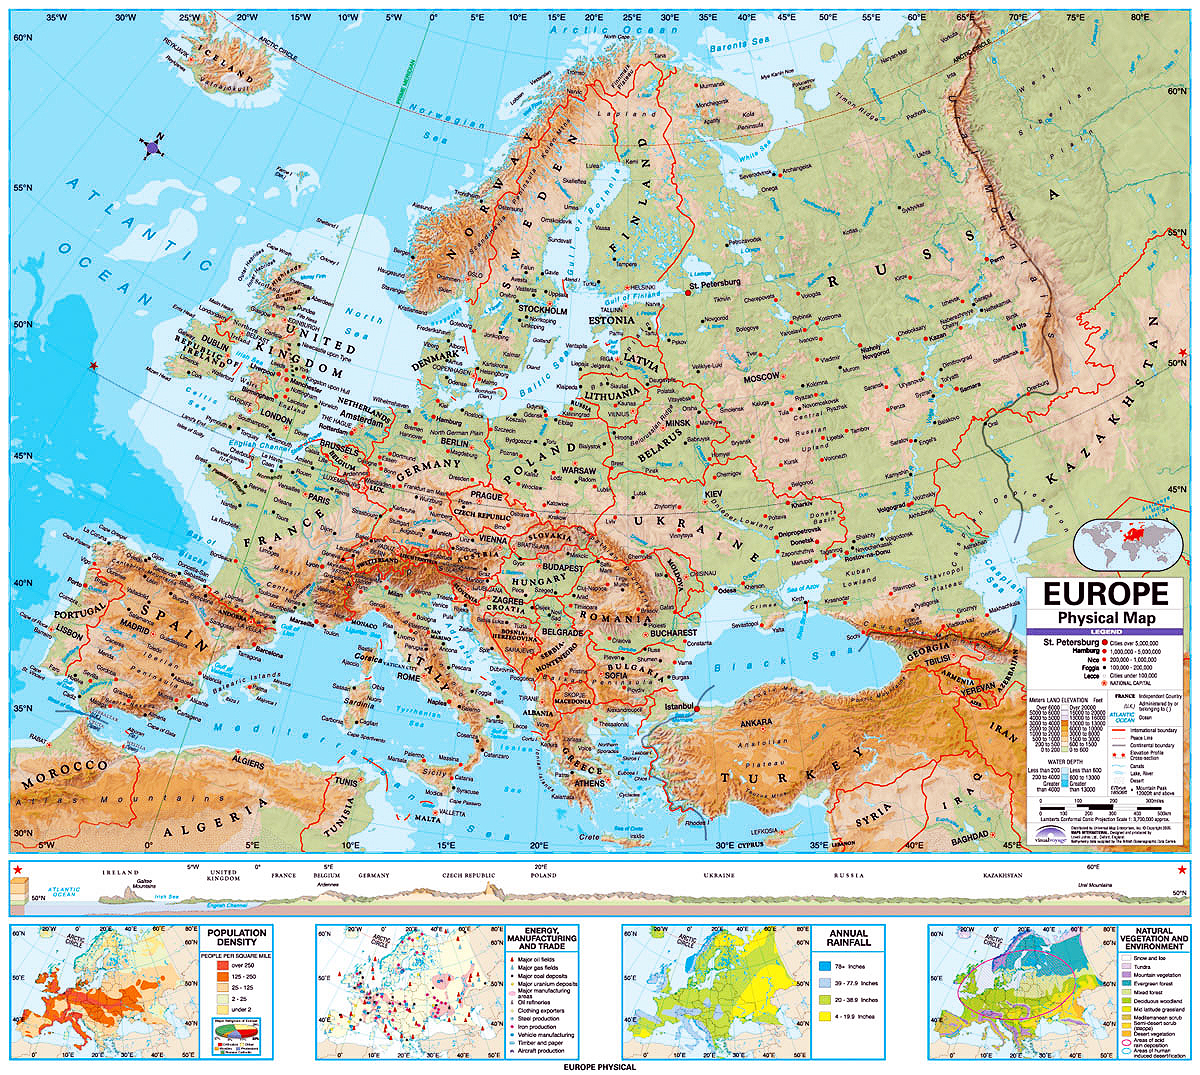 High Resolution Map Of Europe.Memographer Travel Photo Journal